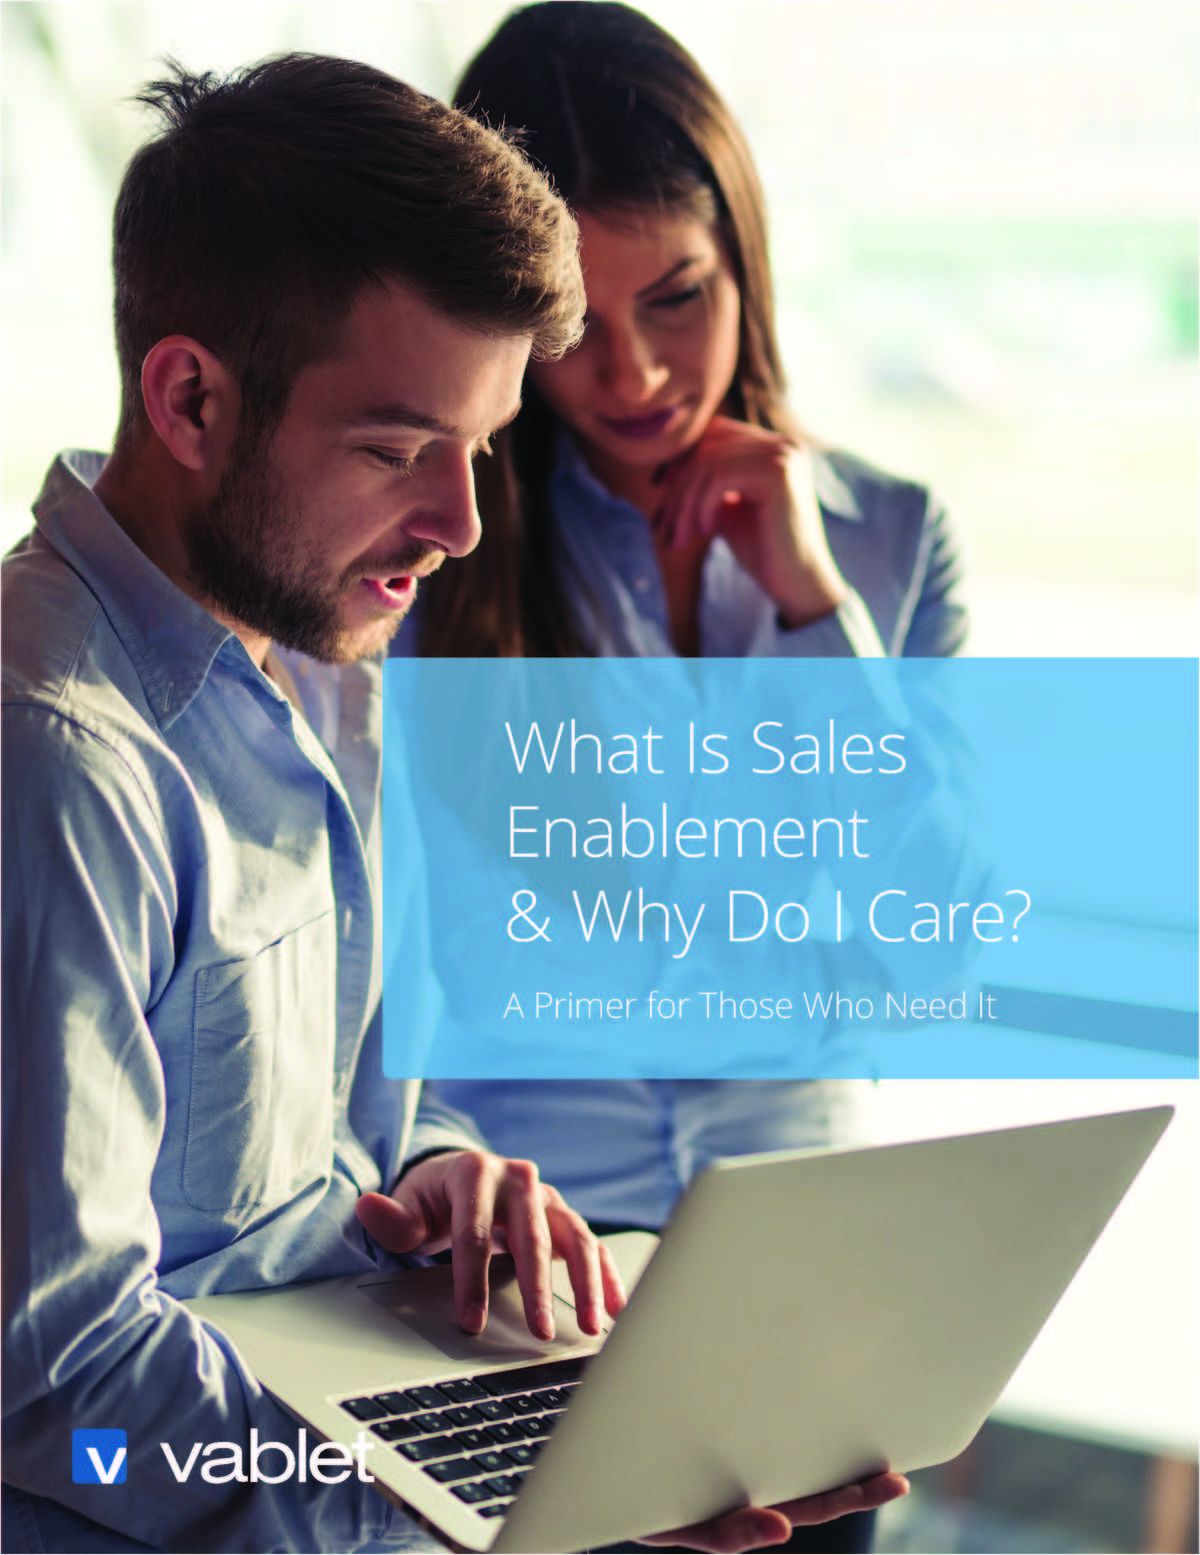 The Three Components of Sales Enablement